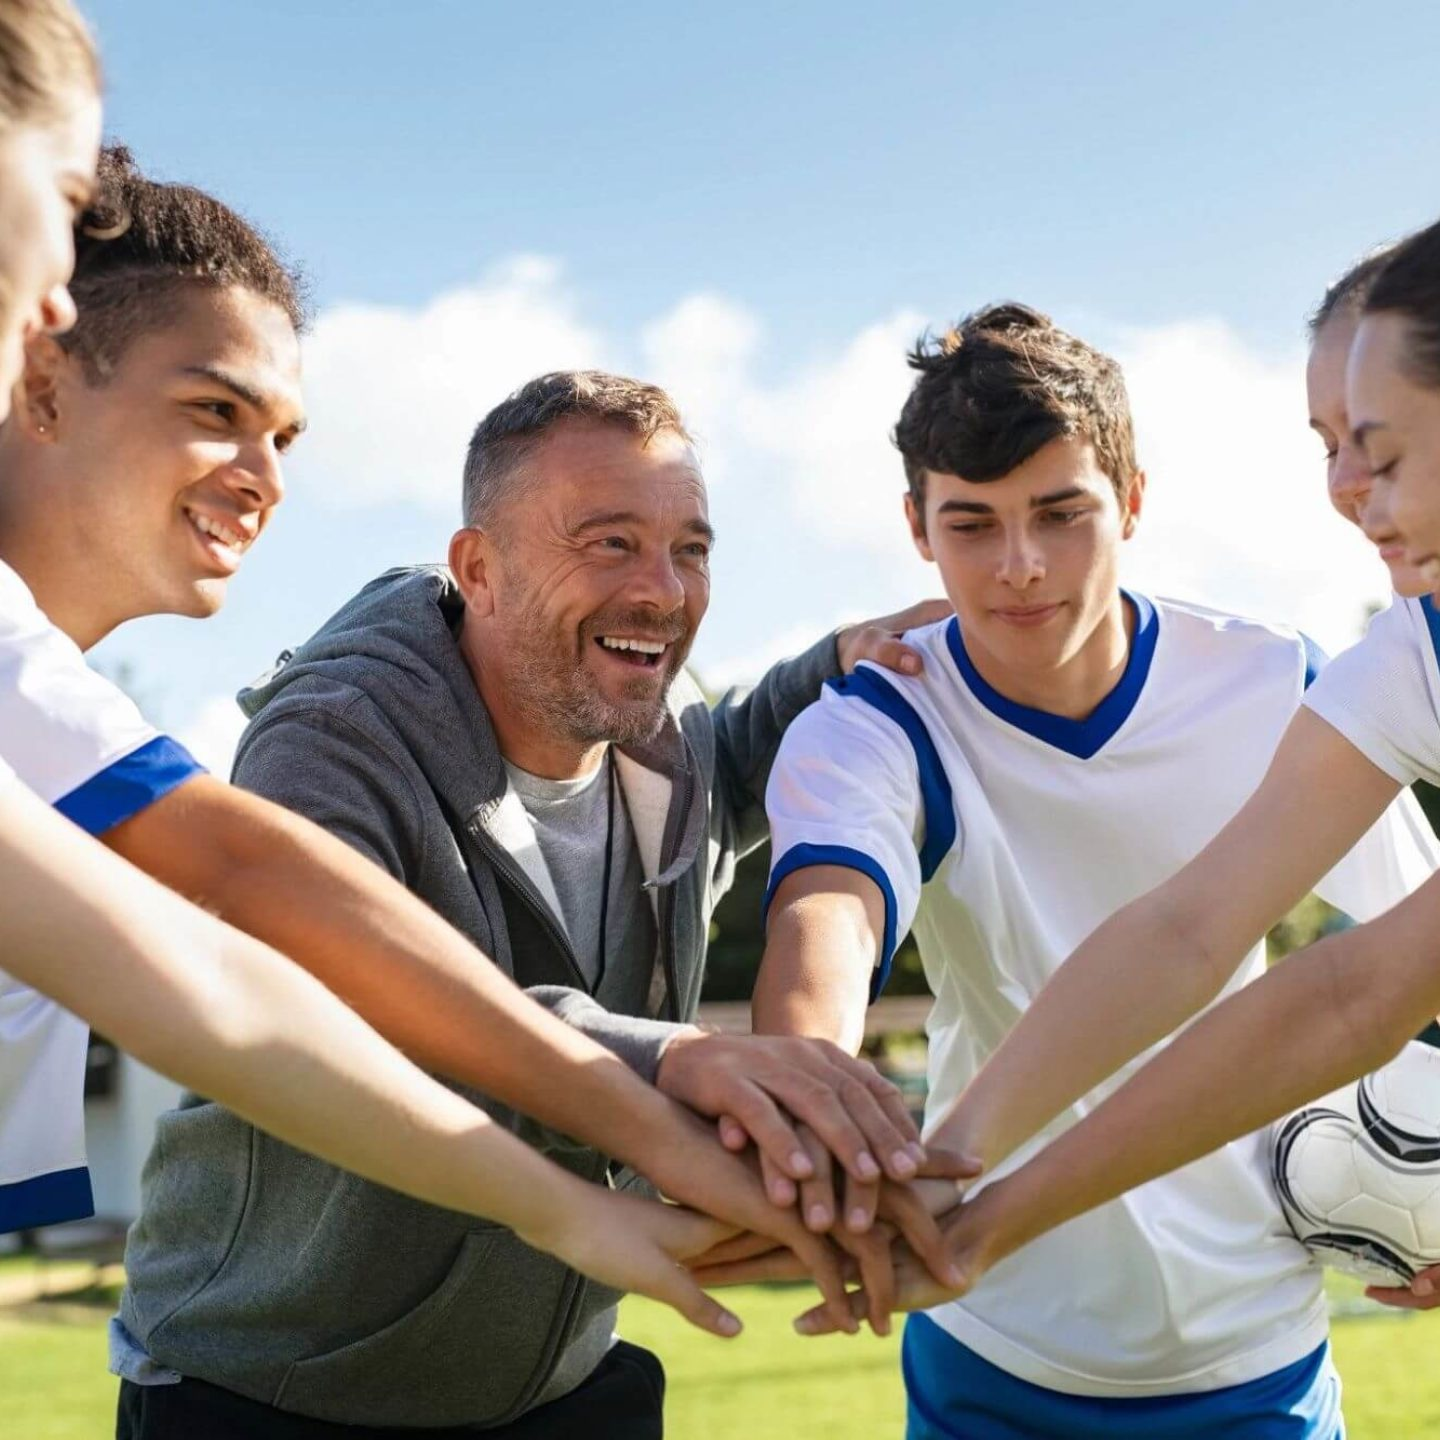 Team huddle - What Parents and Coaches Need to Know About Supplements for Student Athletes   NSF International